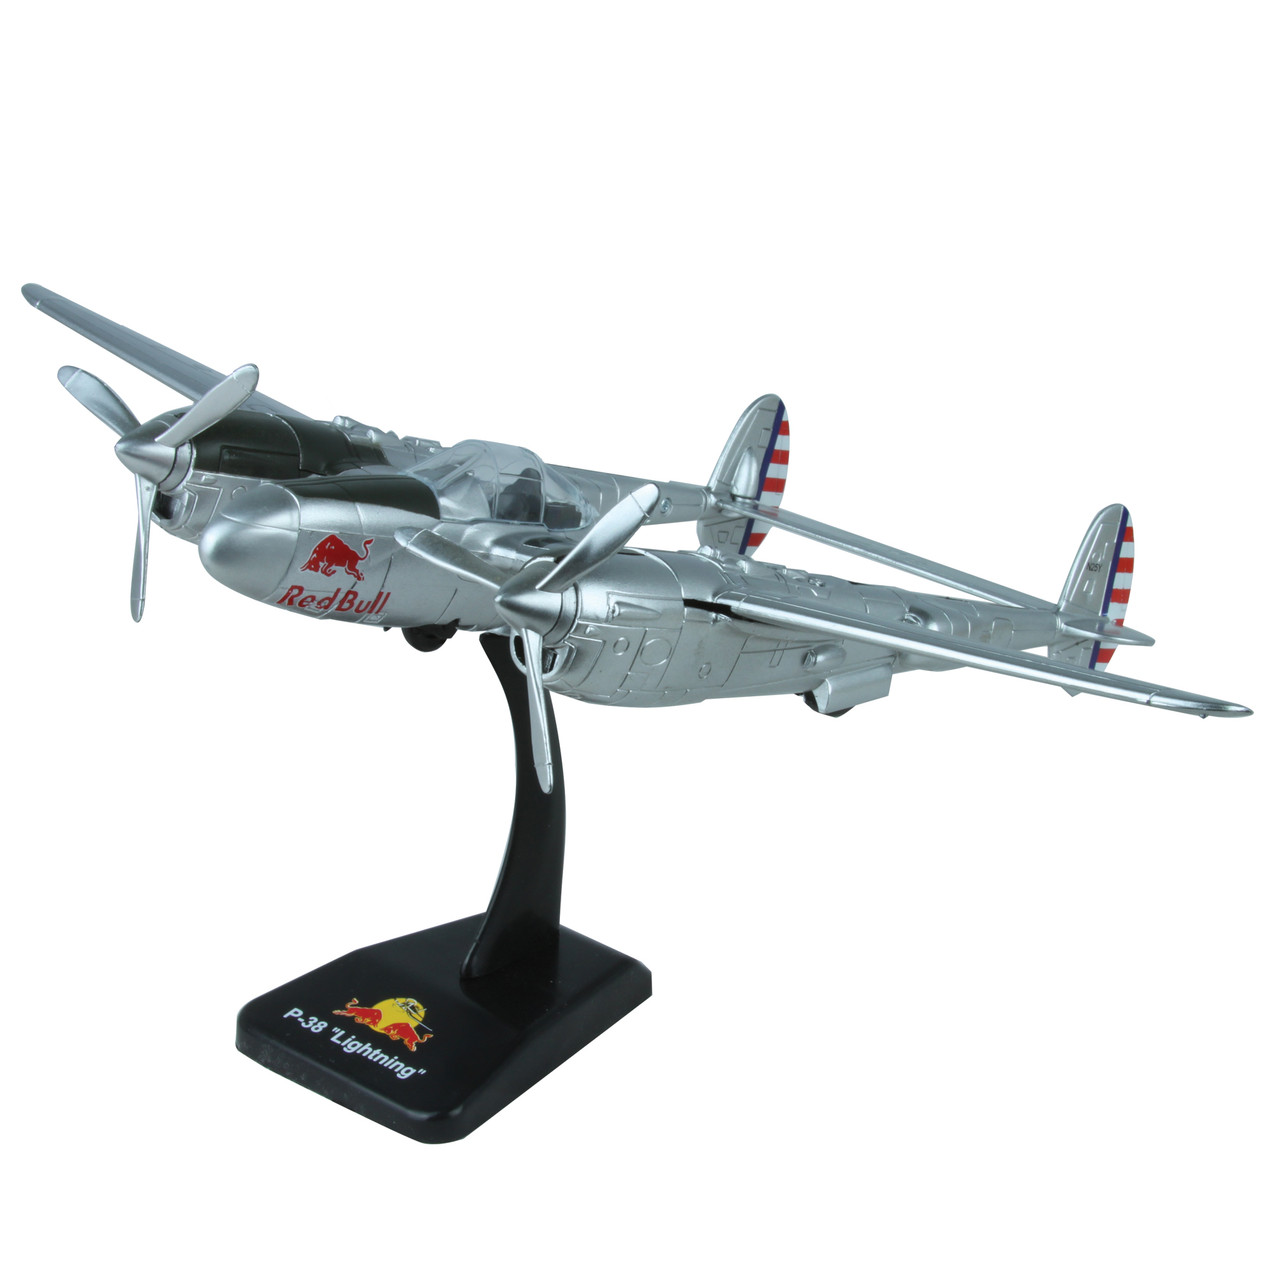 Flying Bulls P-38 Lightning 1:48 Scale Diecast Model by New Ray